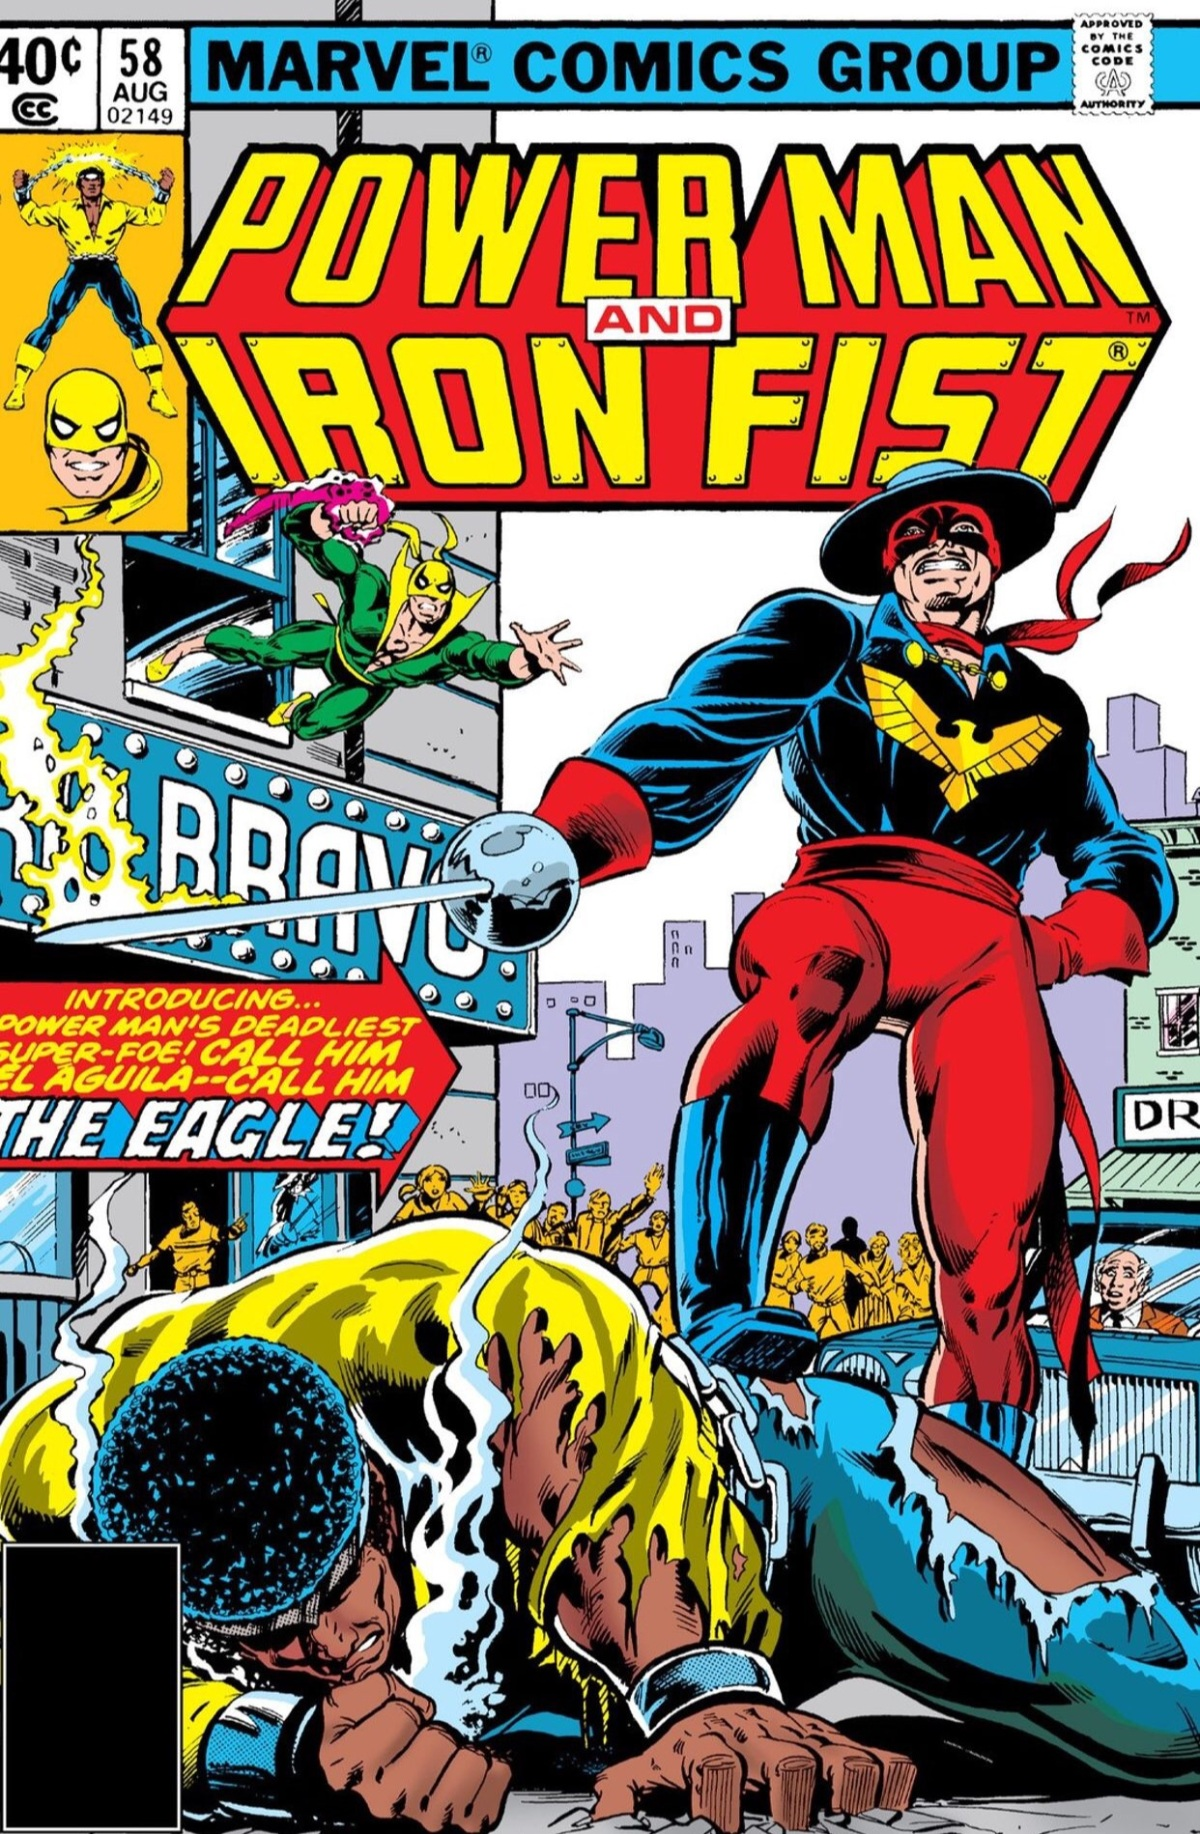 Power Man and Iron Fist #58